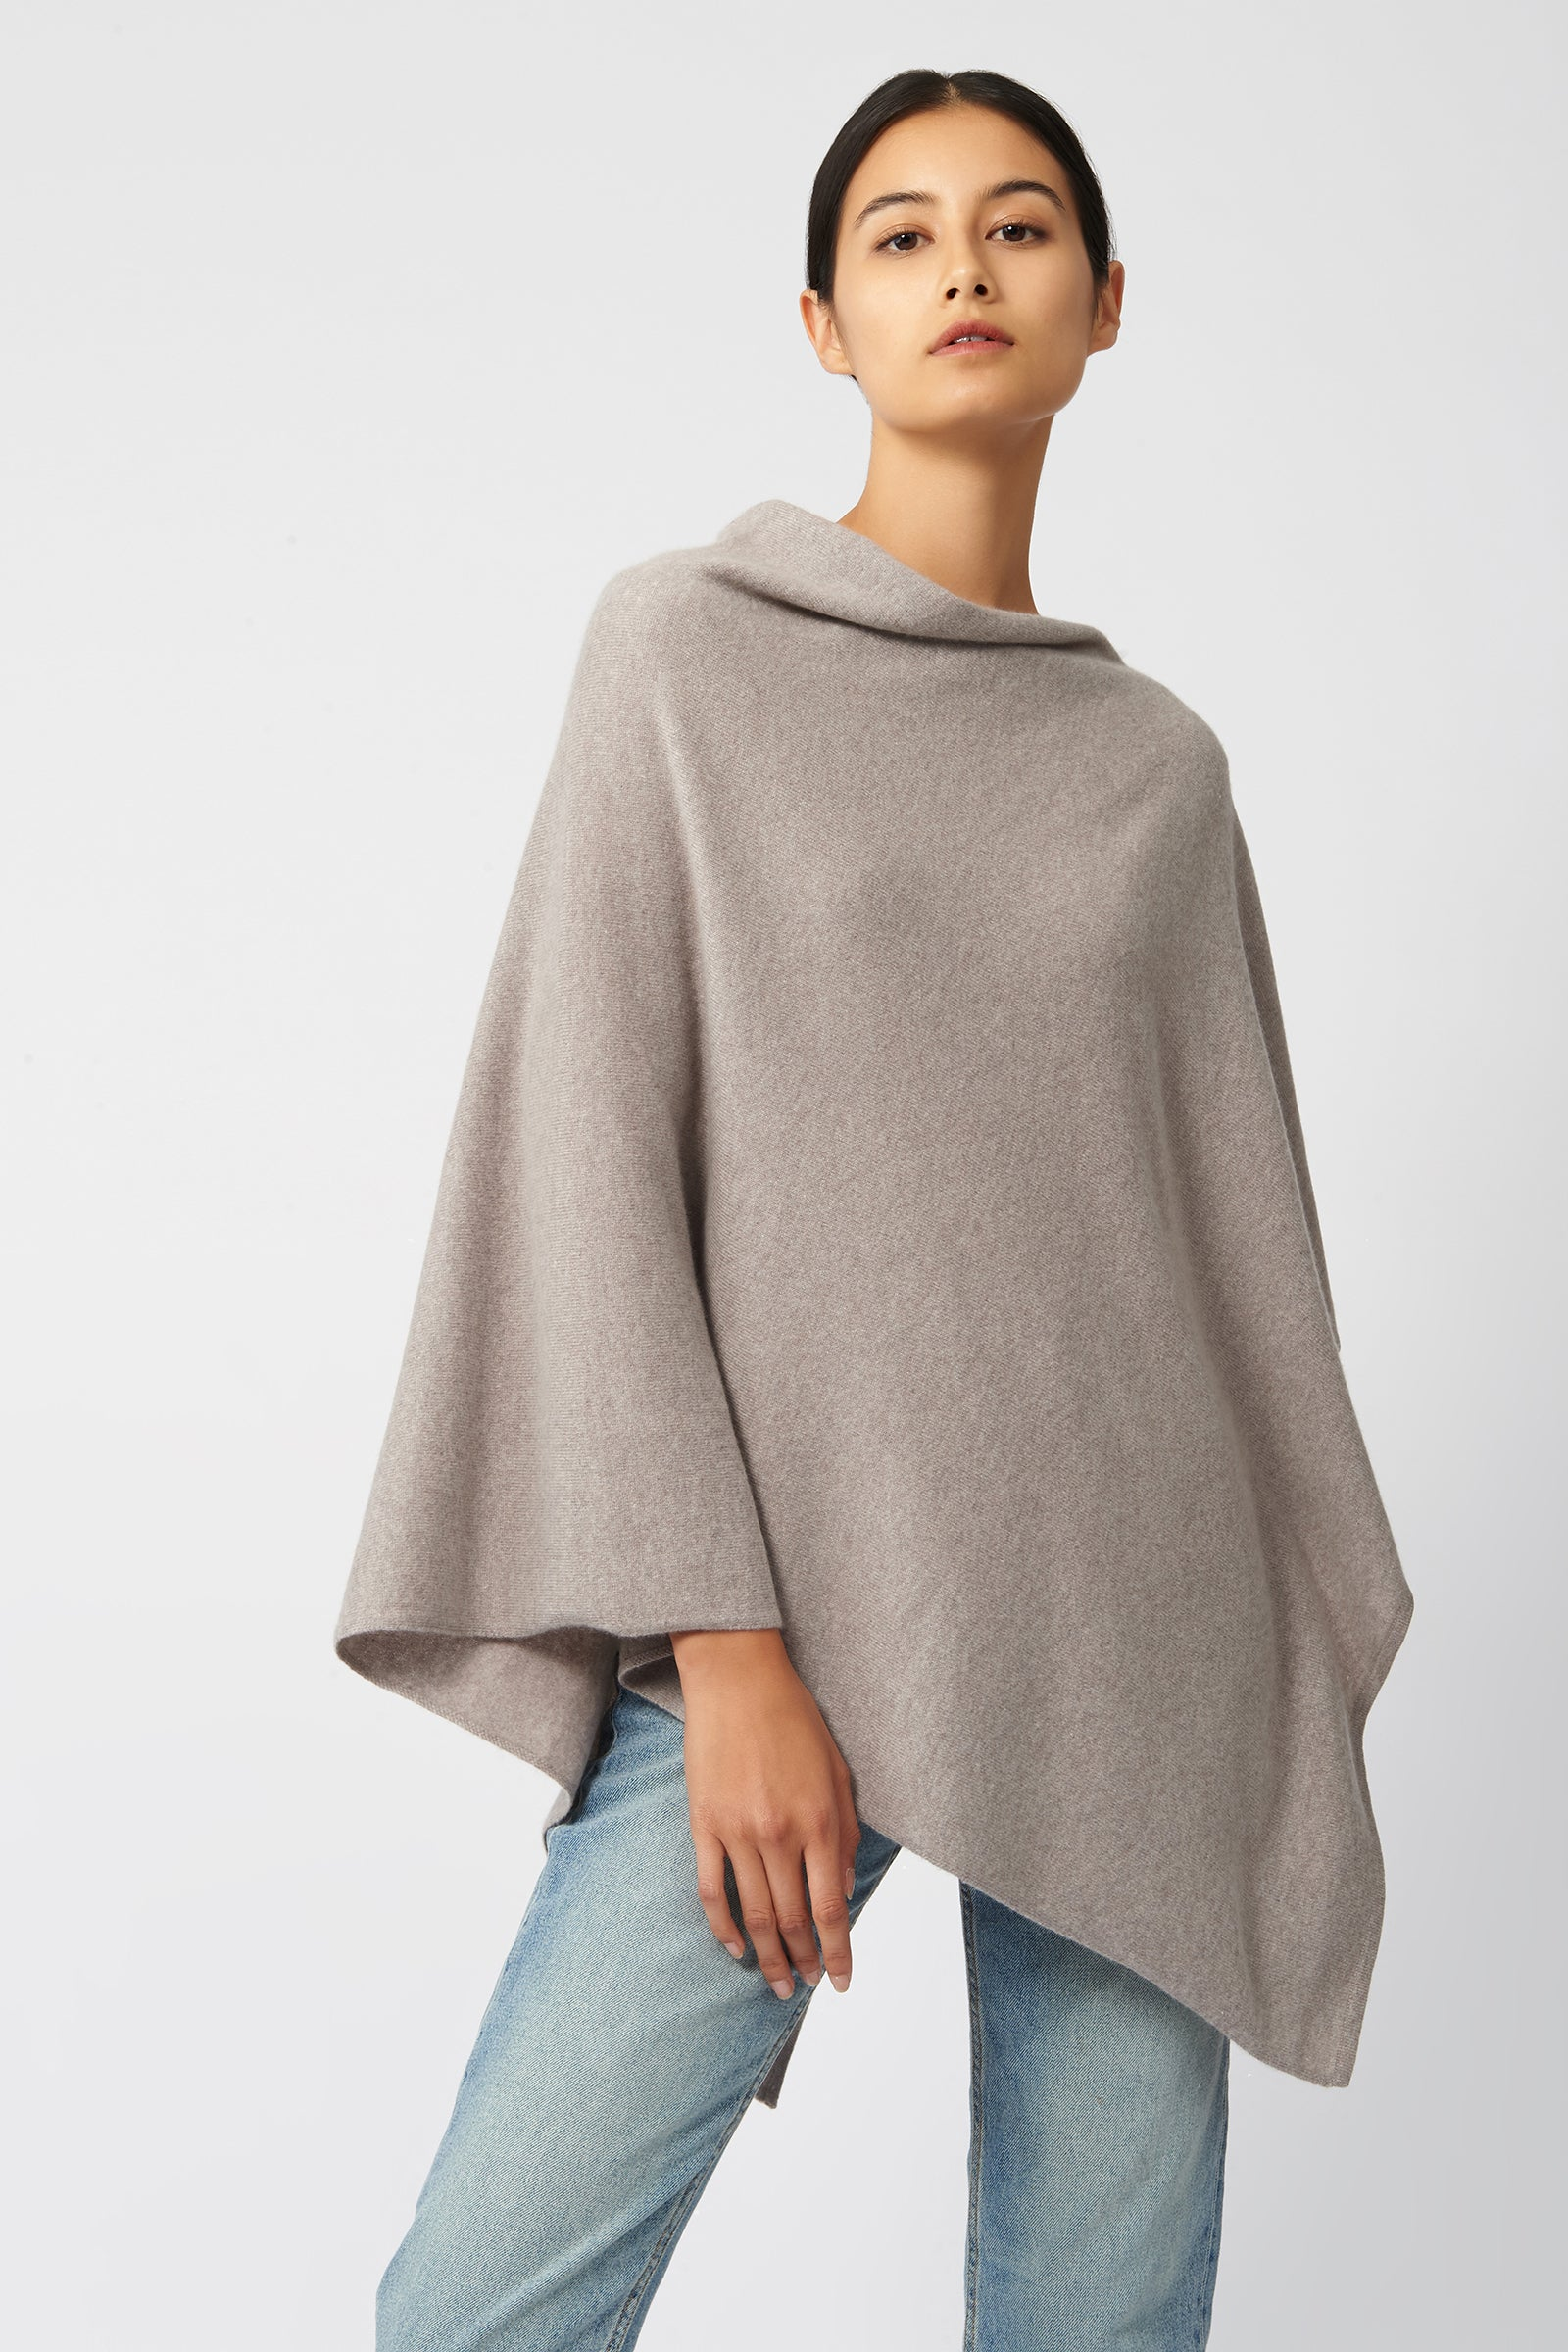 Kal Rieman Cashmere Poncho in Drift on Model Front View